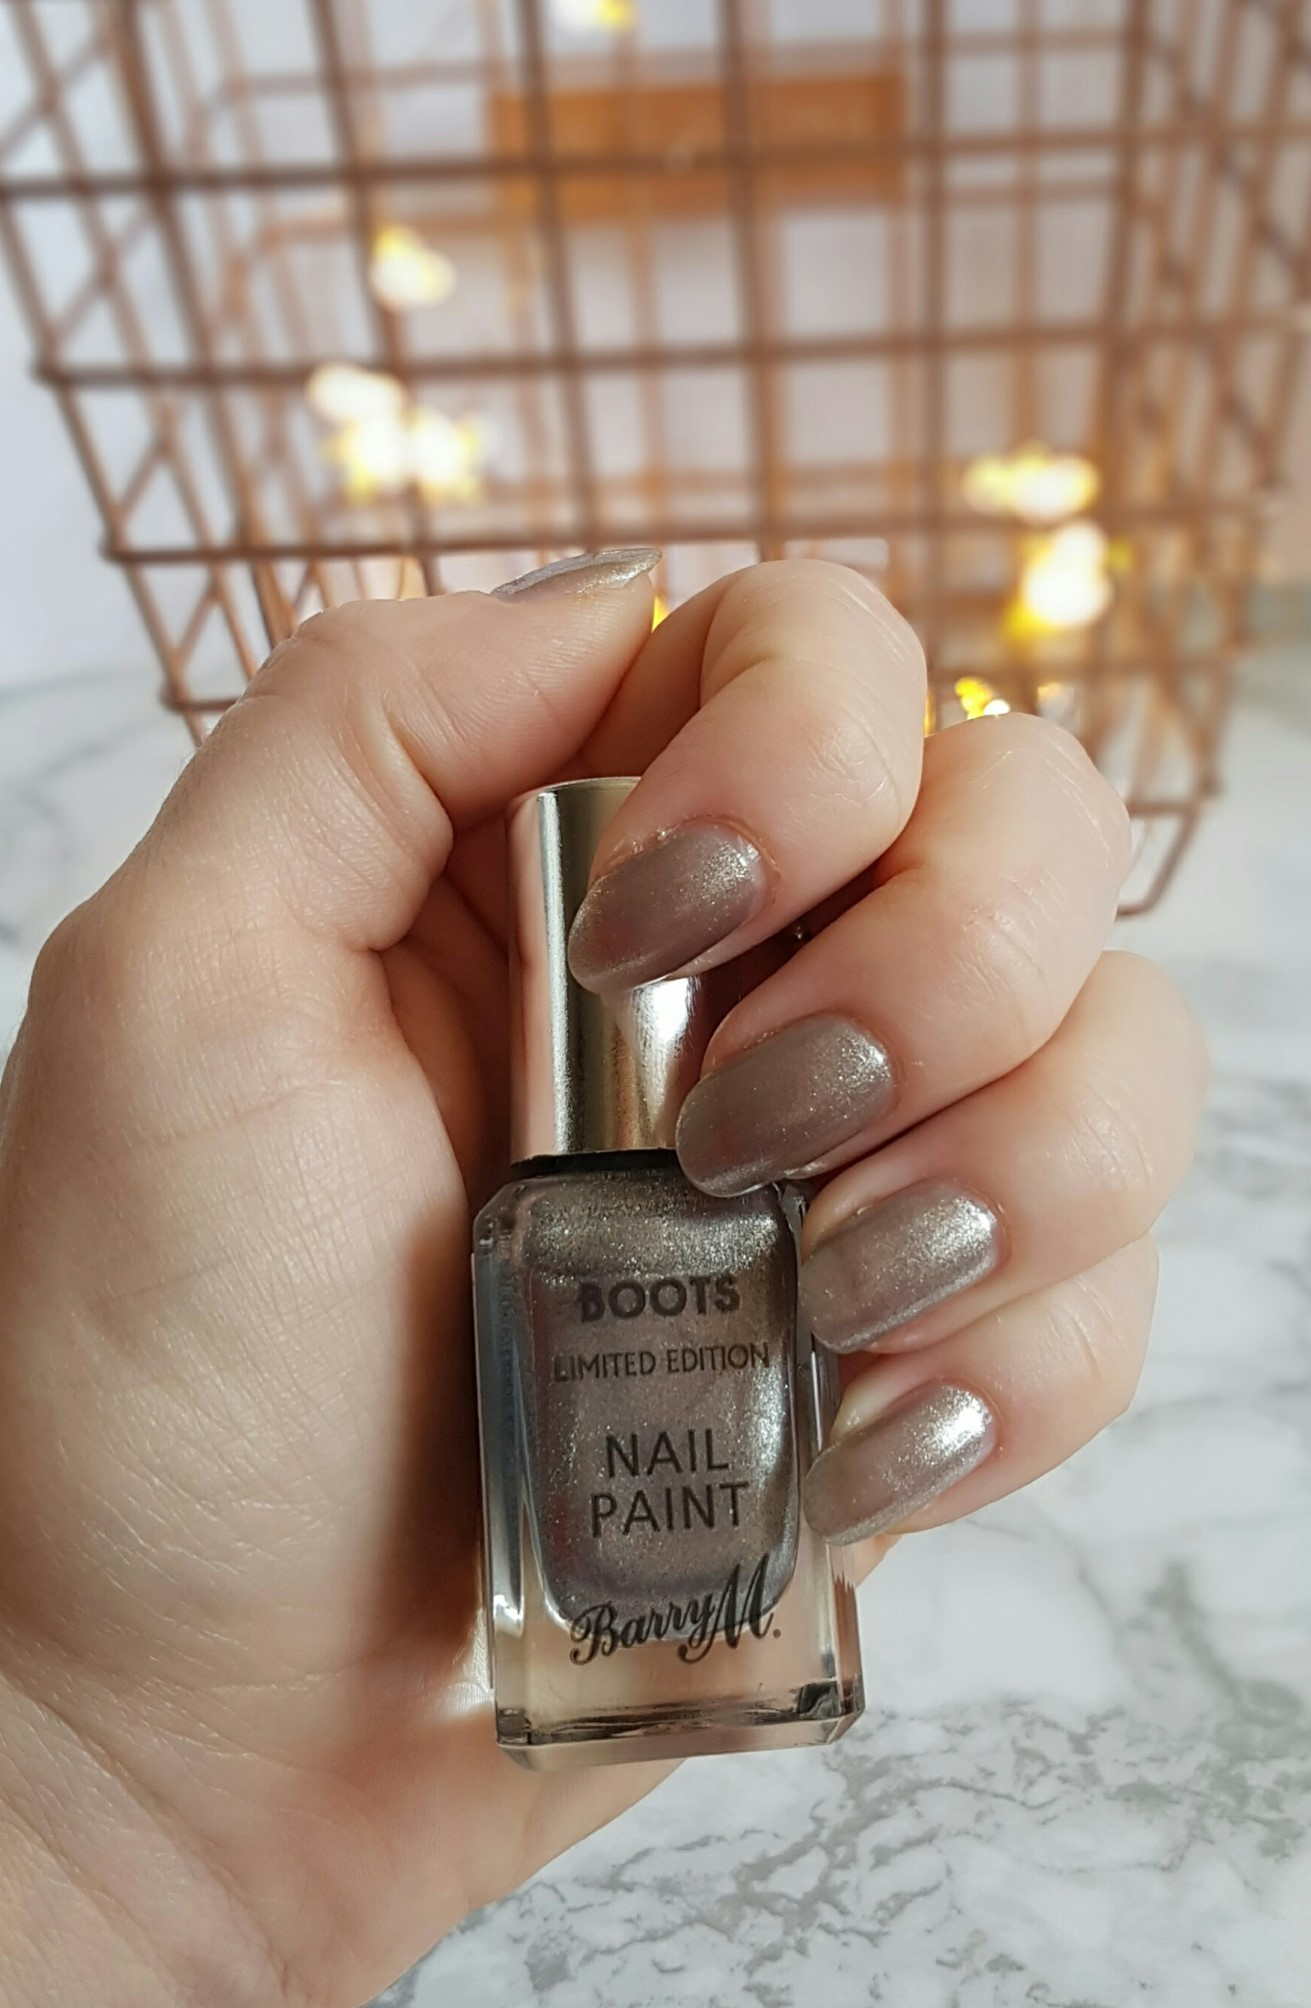 boots-barry-m-limited-edition-nail-varnish-snowflake-2